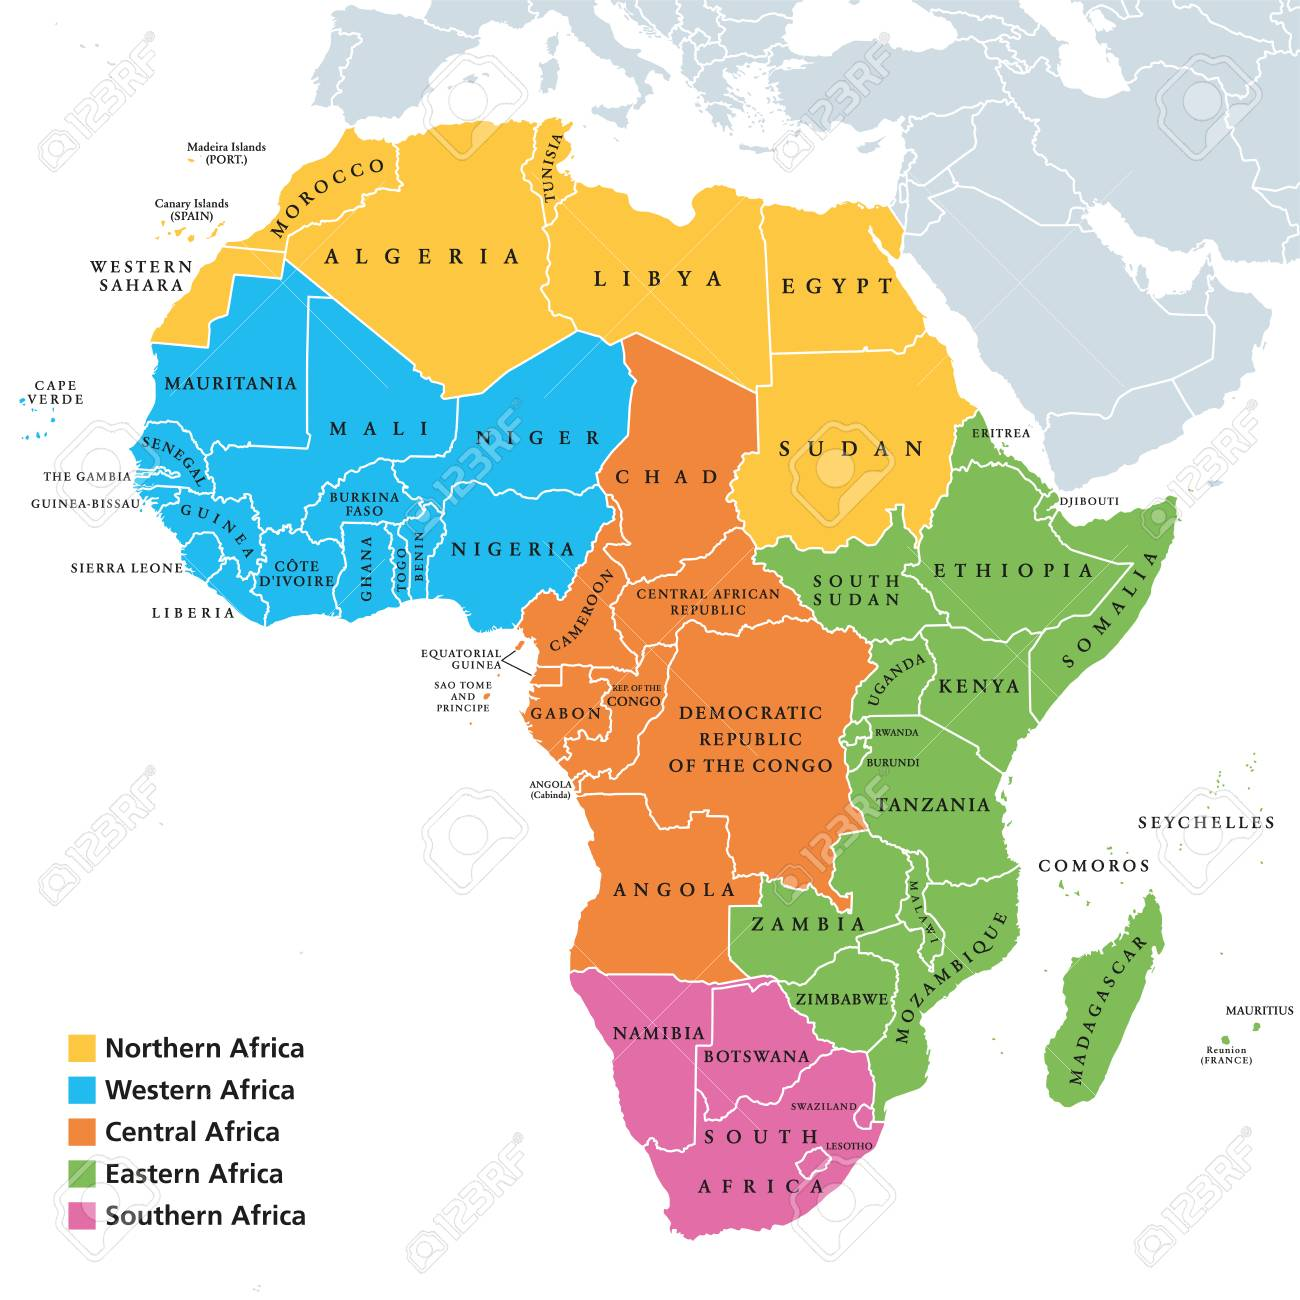 Africa Regions Political Map With Single Countries, United Nations